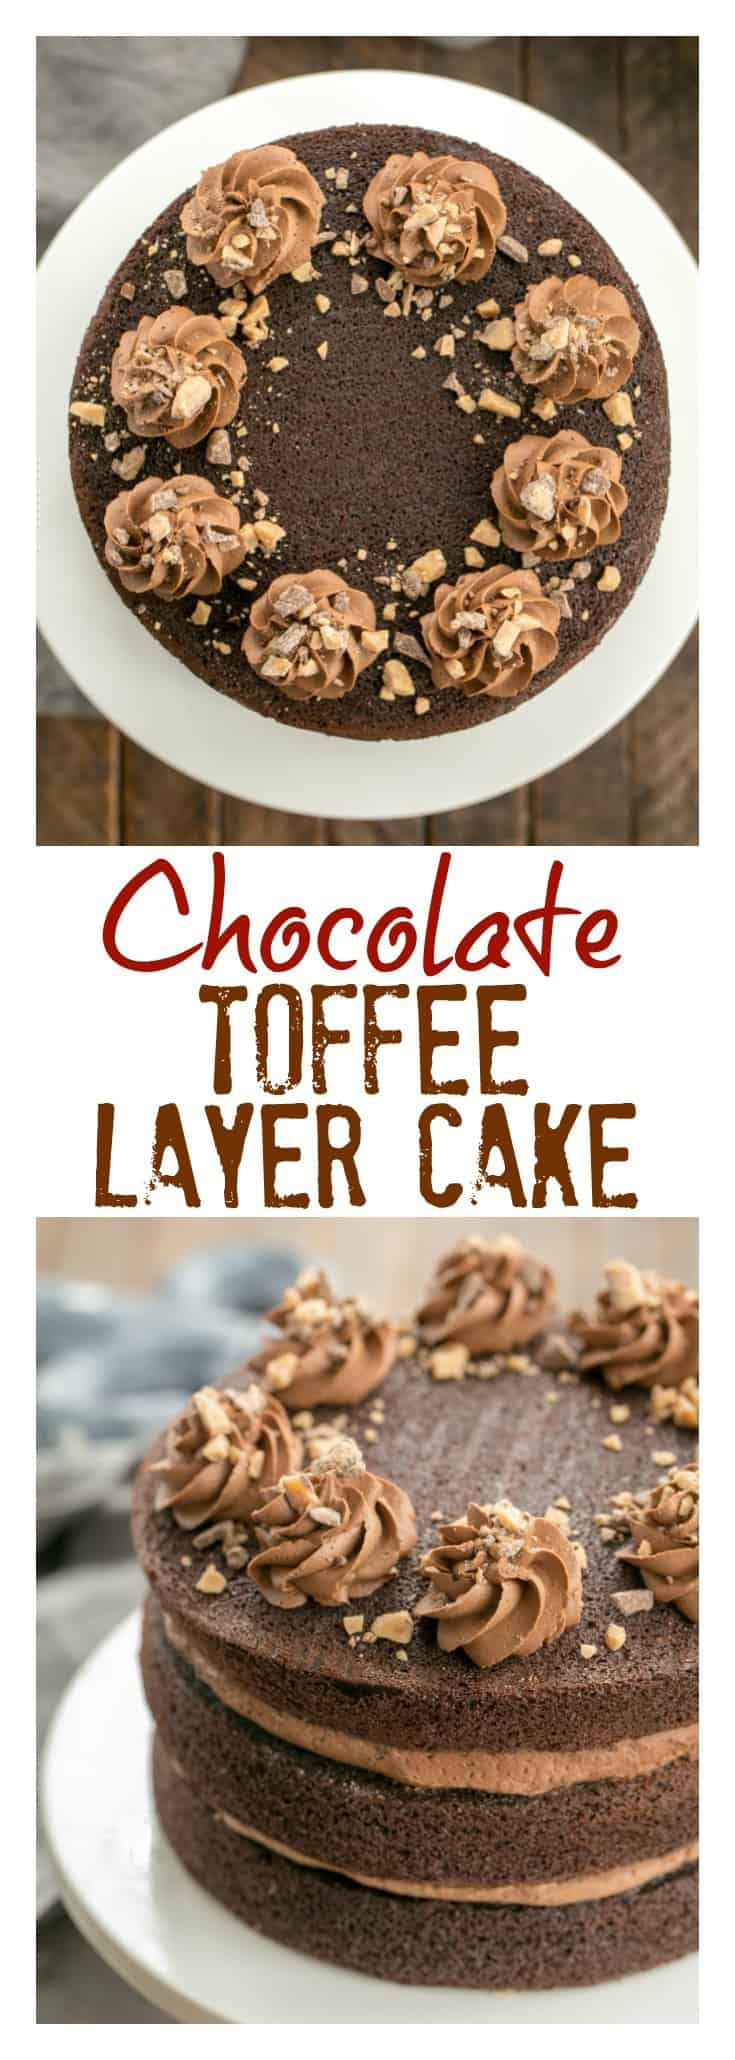 Triple Layer Chocolate Toffee Cake | 3 rich chocolate layers filled with chocolate buttercream and toffee bits